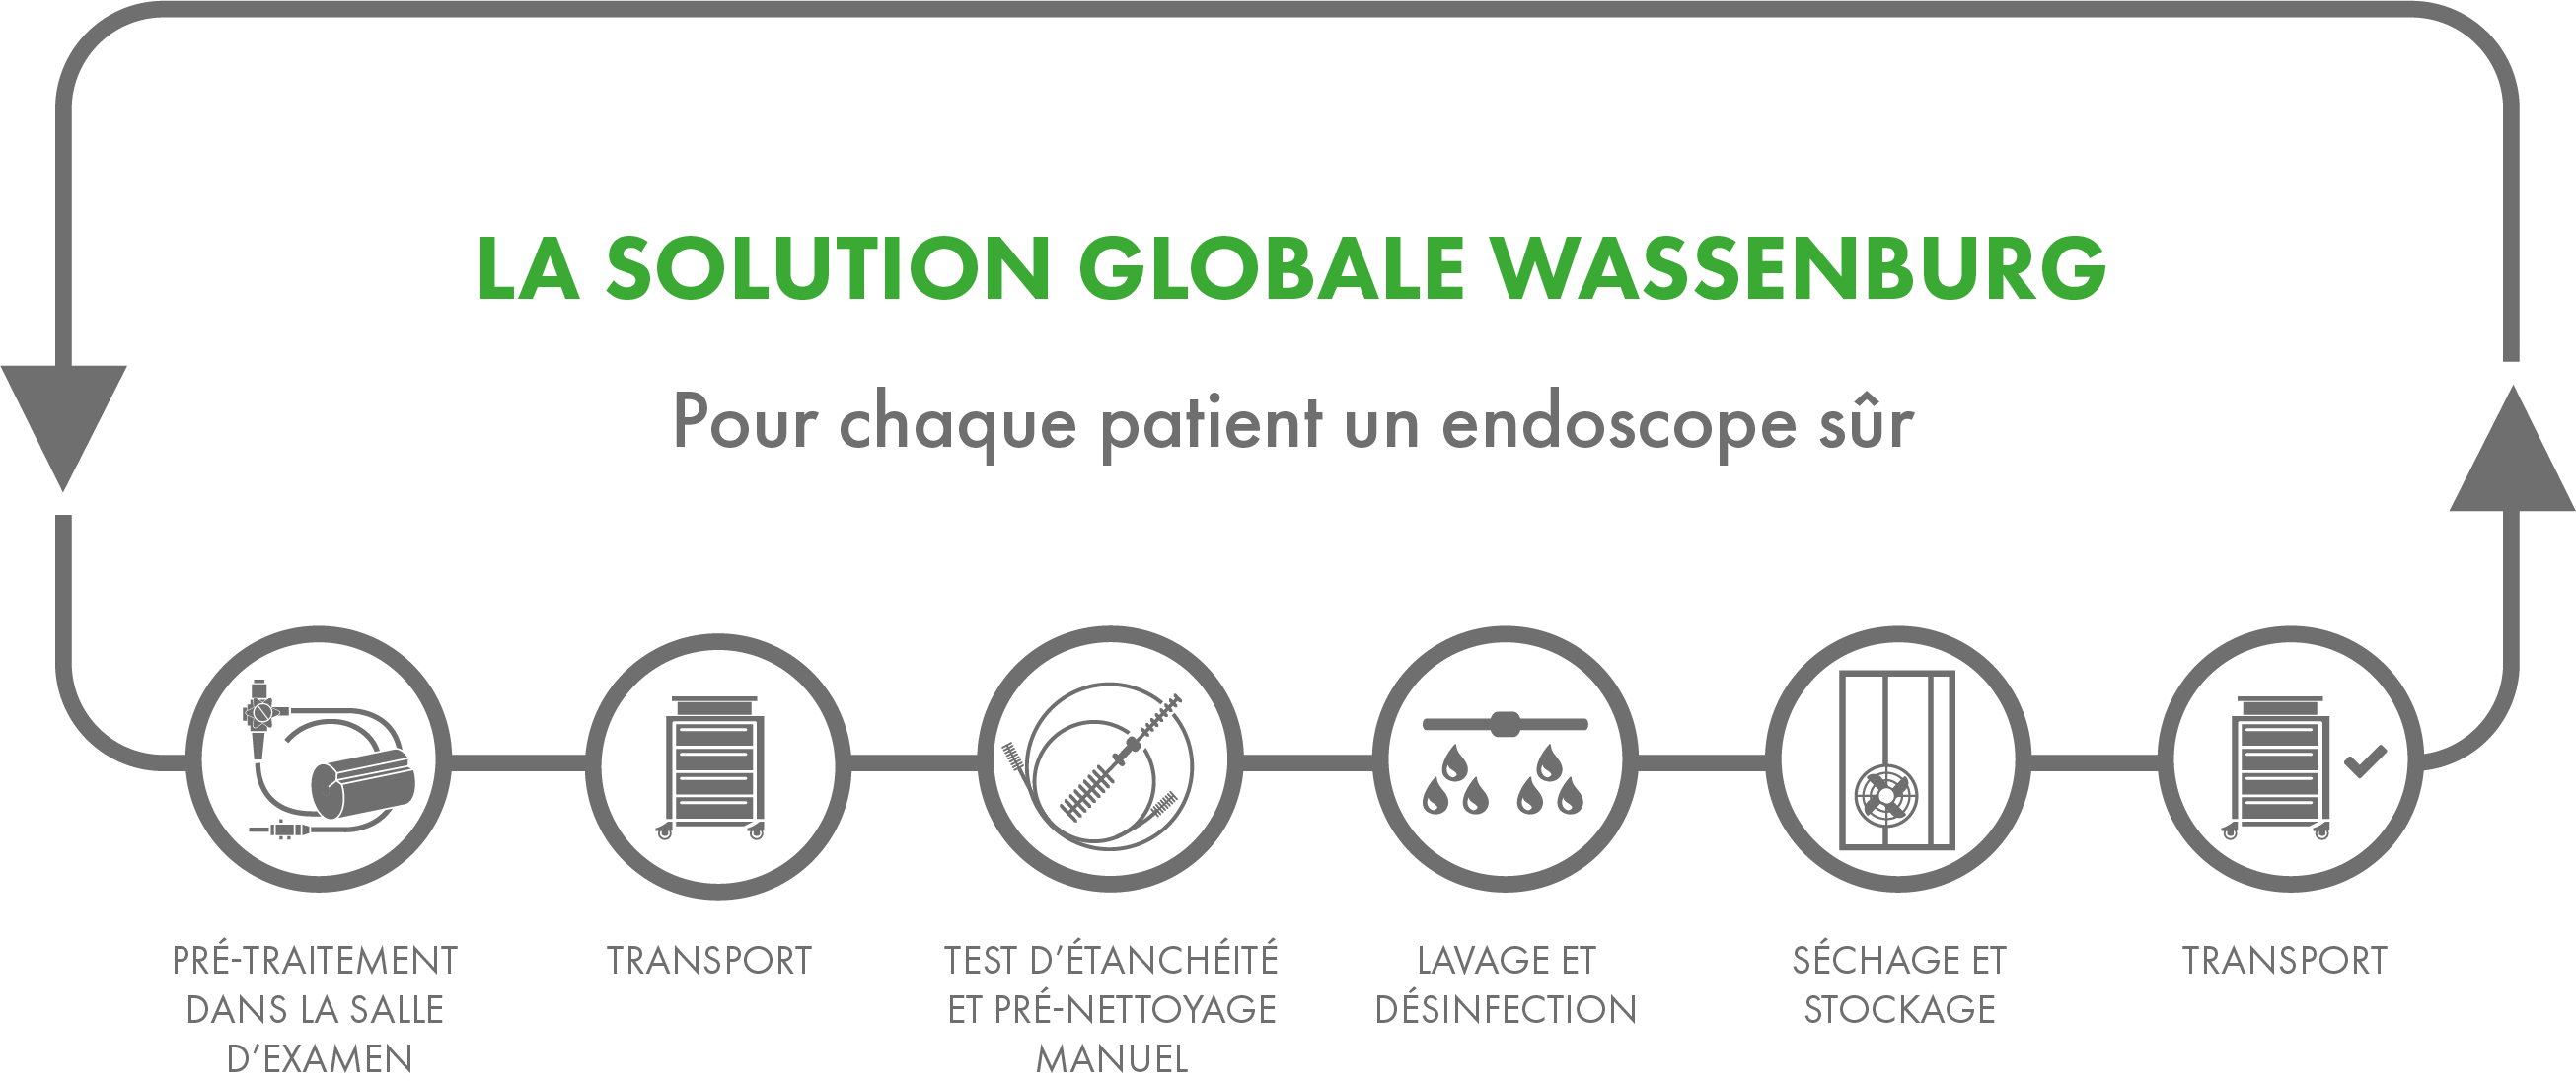 //www.wassenburgmedical.com/be/wp-content/uploads/sites/7/2018/07/Wassenburg-Total-Solution-FR.png